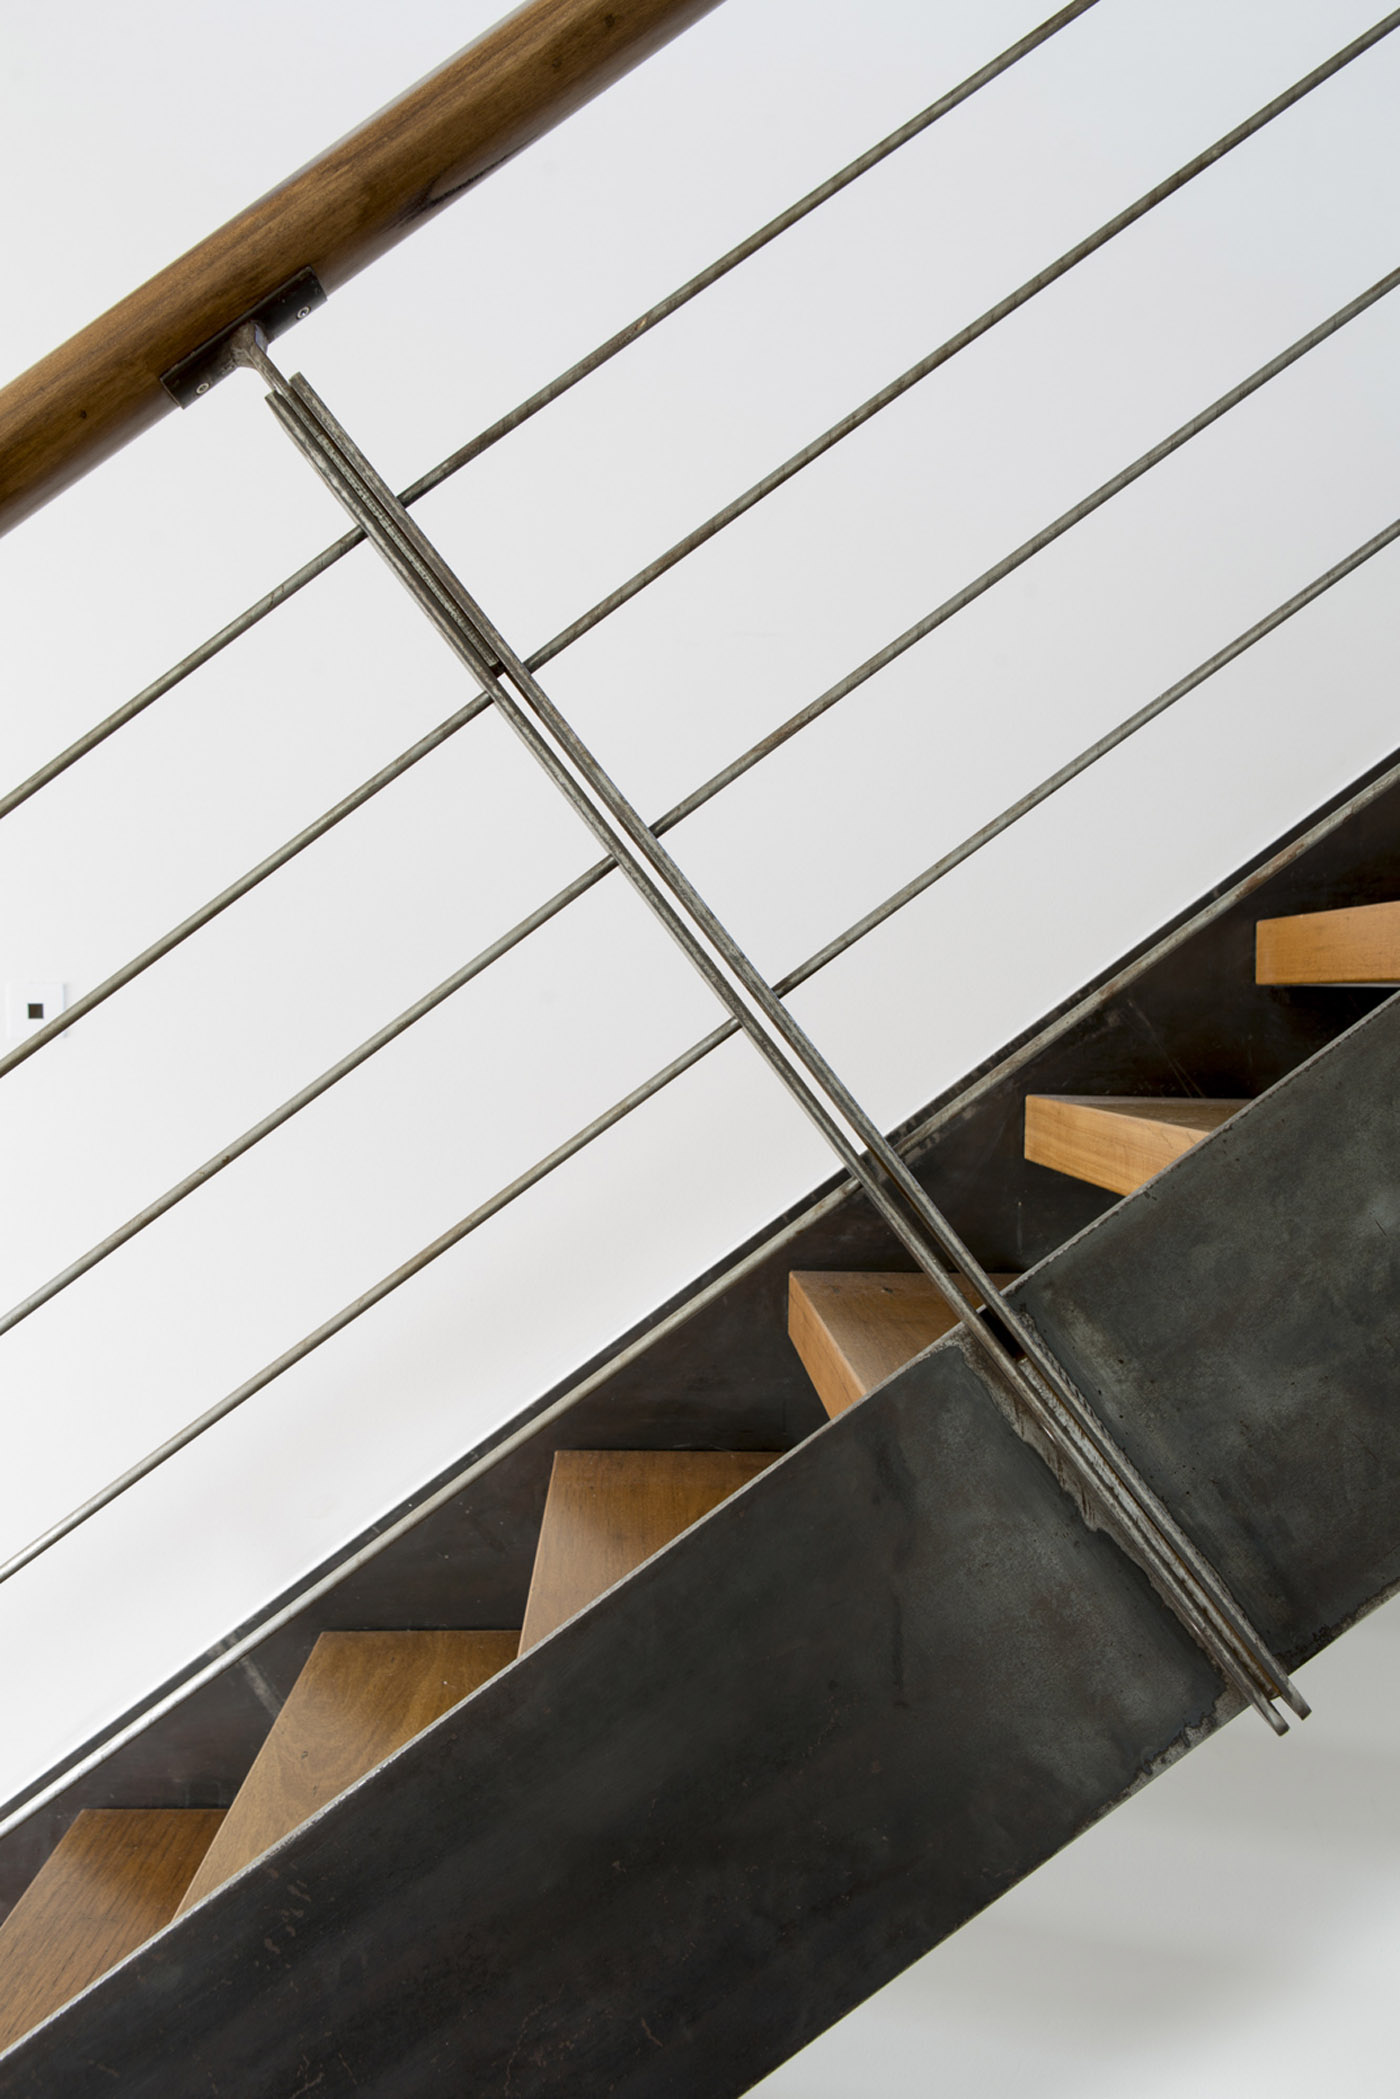 Gandha Kariappa Terrace by Sydney residential architects Sam Crawford Architects. Beautiful detail of the custom designed steel stair balustrade and timber handrail